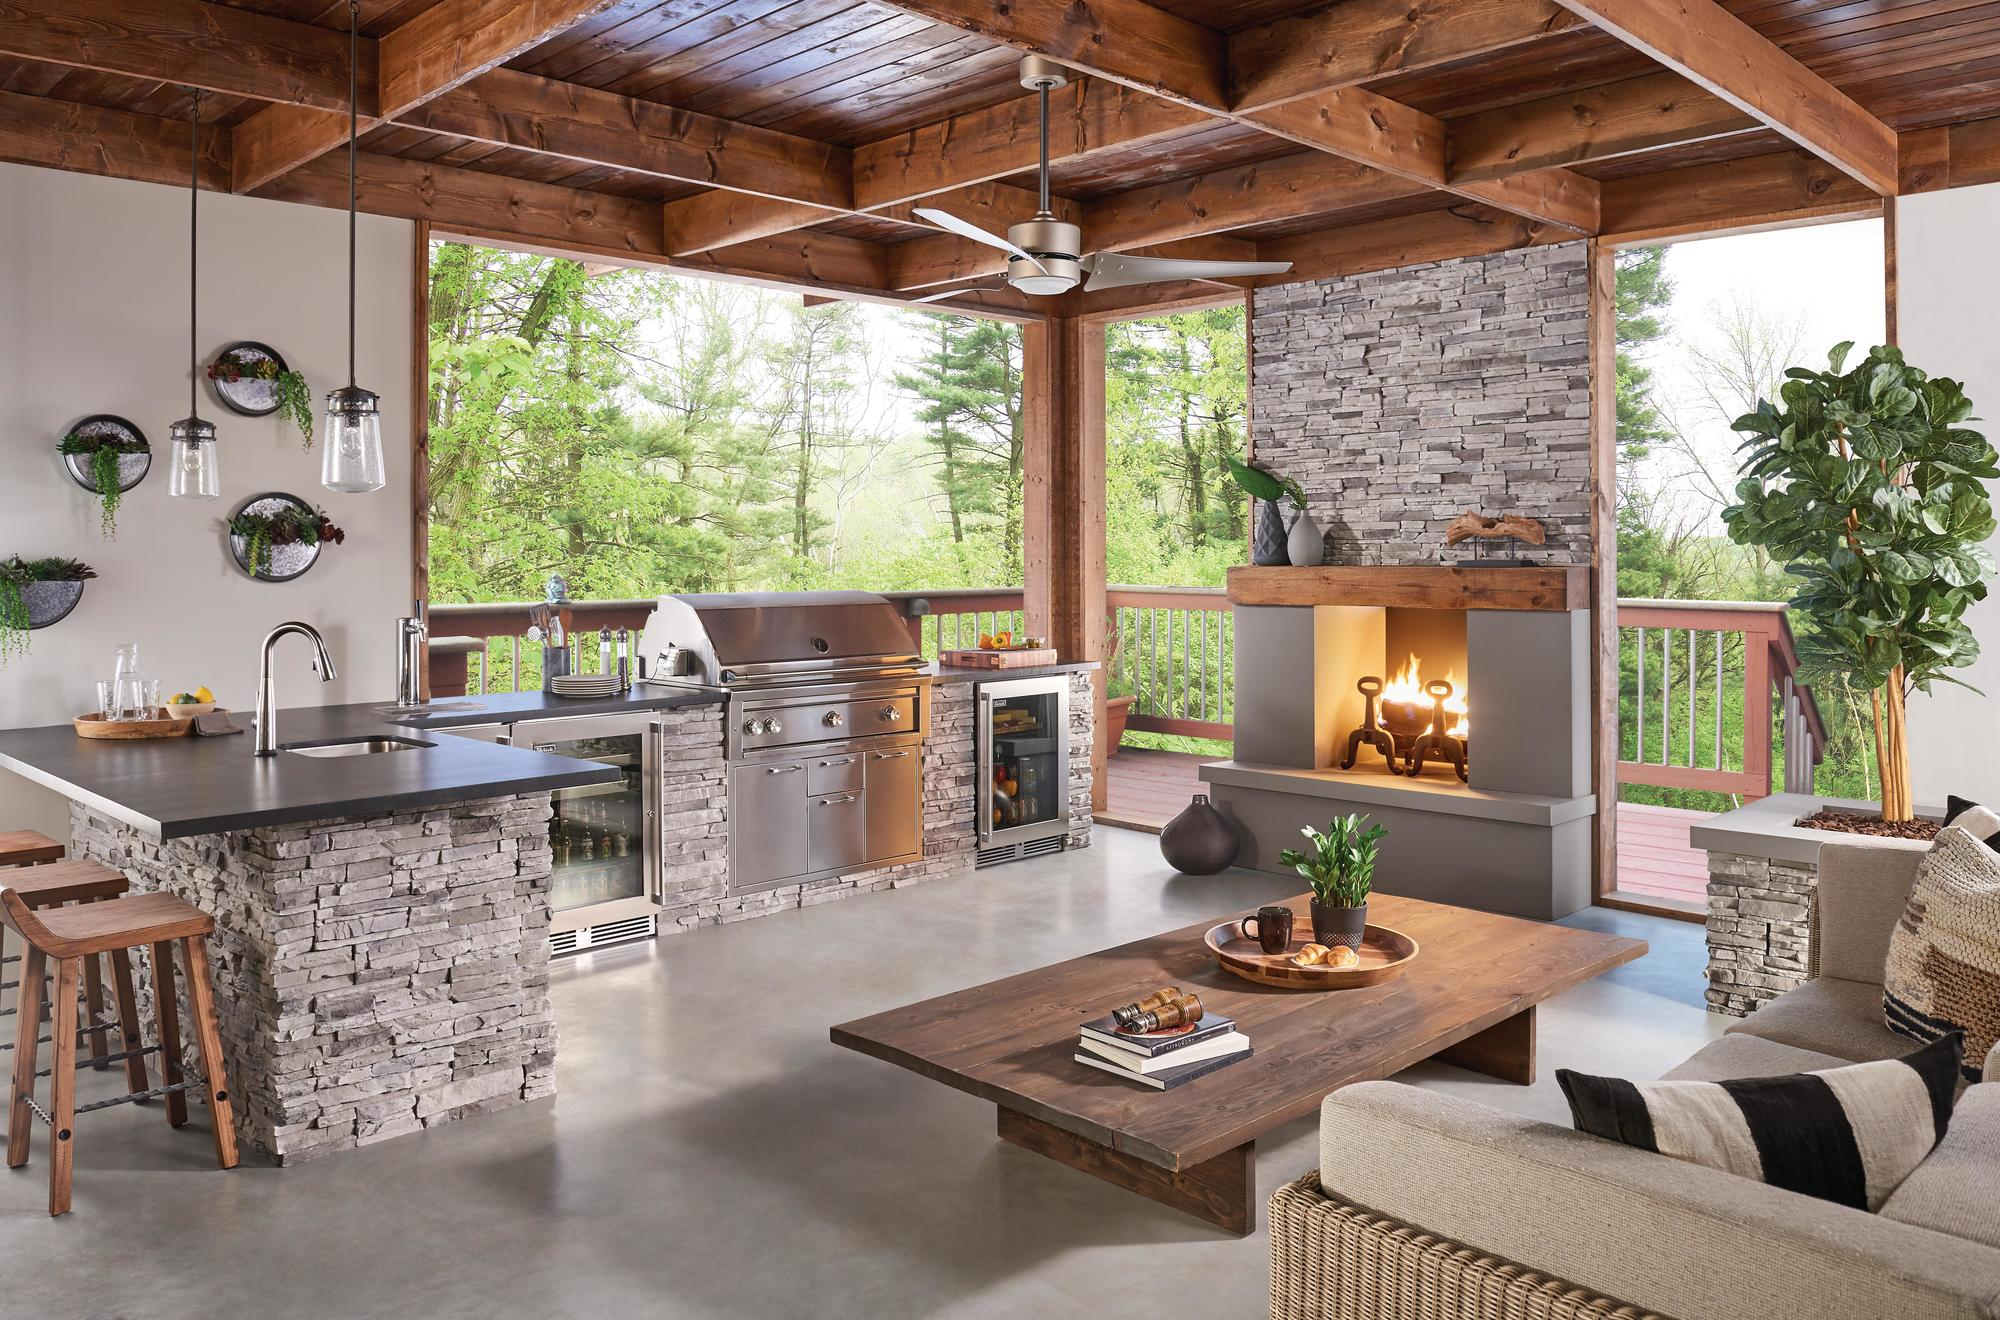 Outdoor Kitchen and Fireplace by Kindred